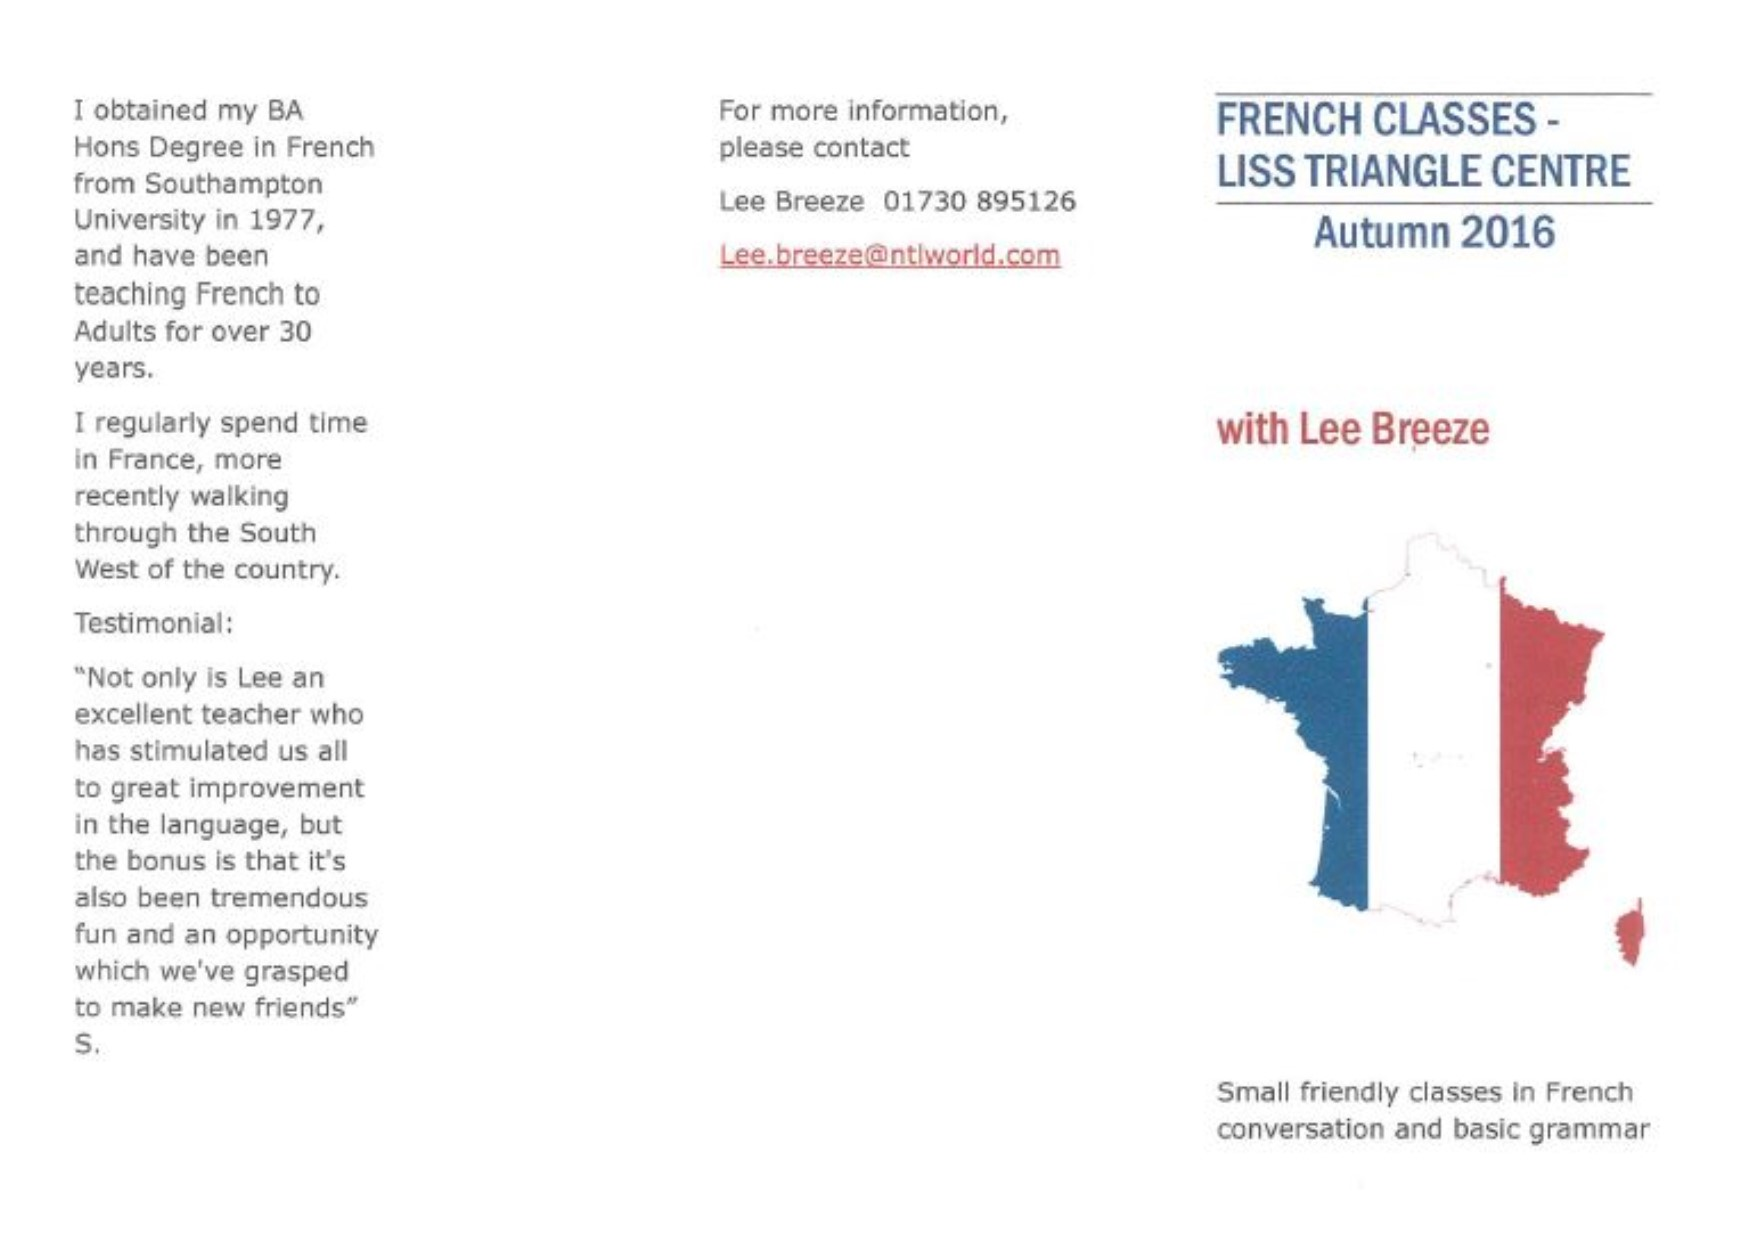 French with Lee Breeze - The Triangle Centre